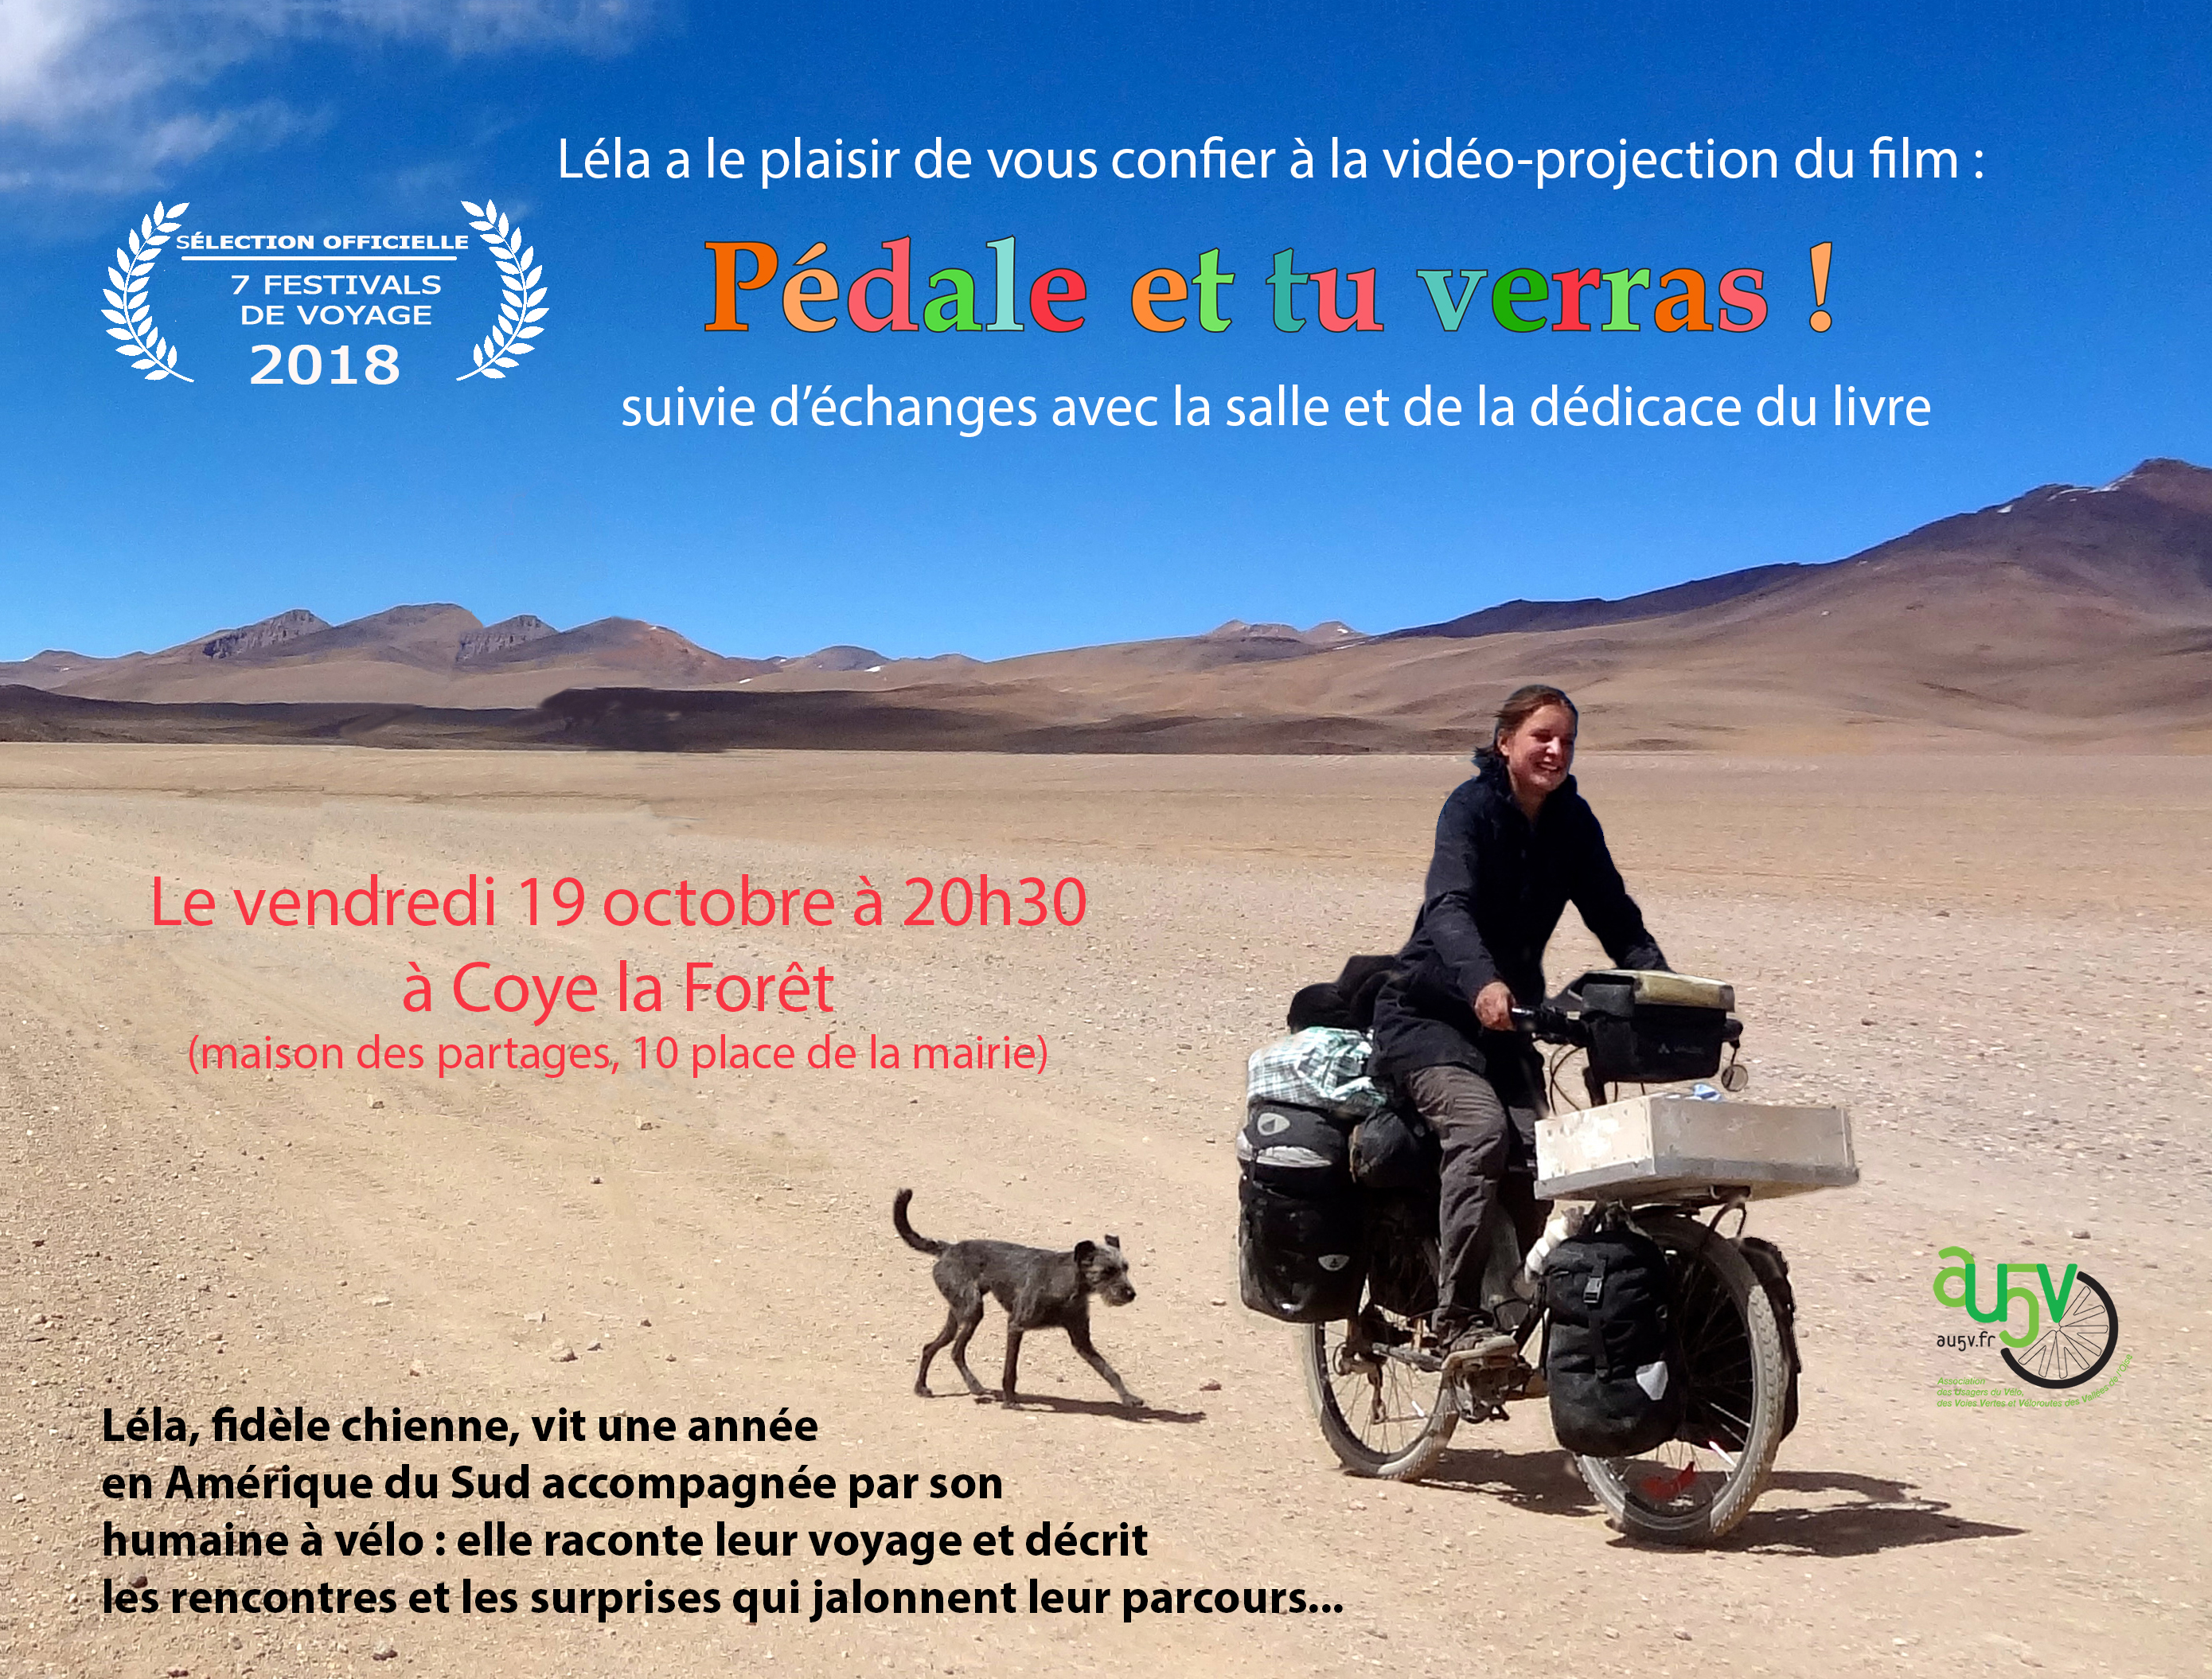 Projection à Coye la Forêt (60) le 19 octobre 2018 à 20h30